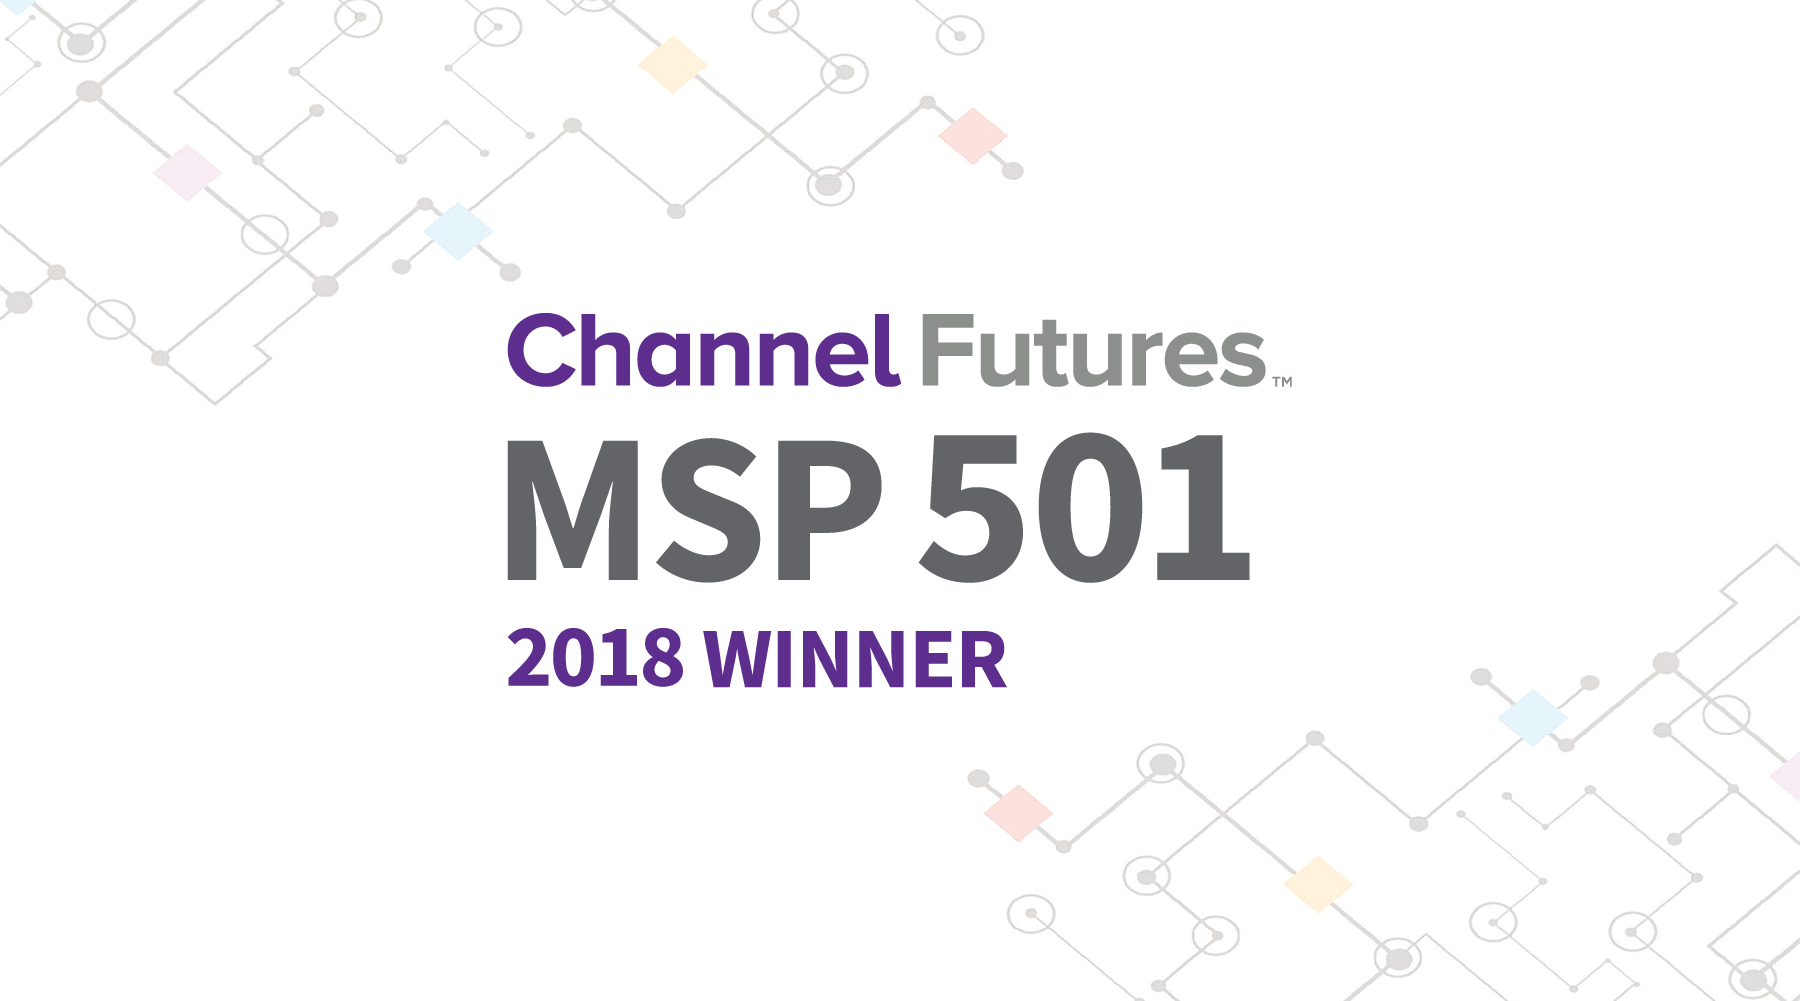 Channel Futures MSP 501 2018 Winner